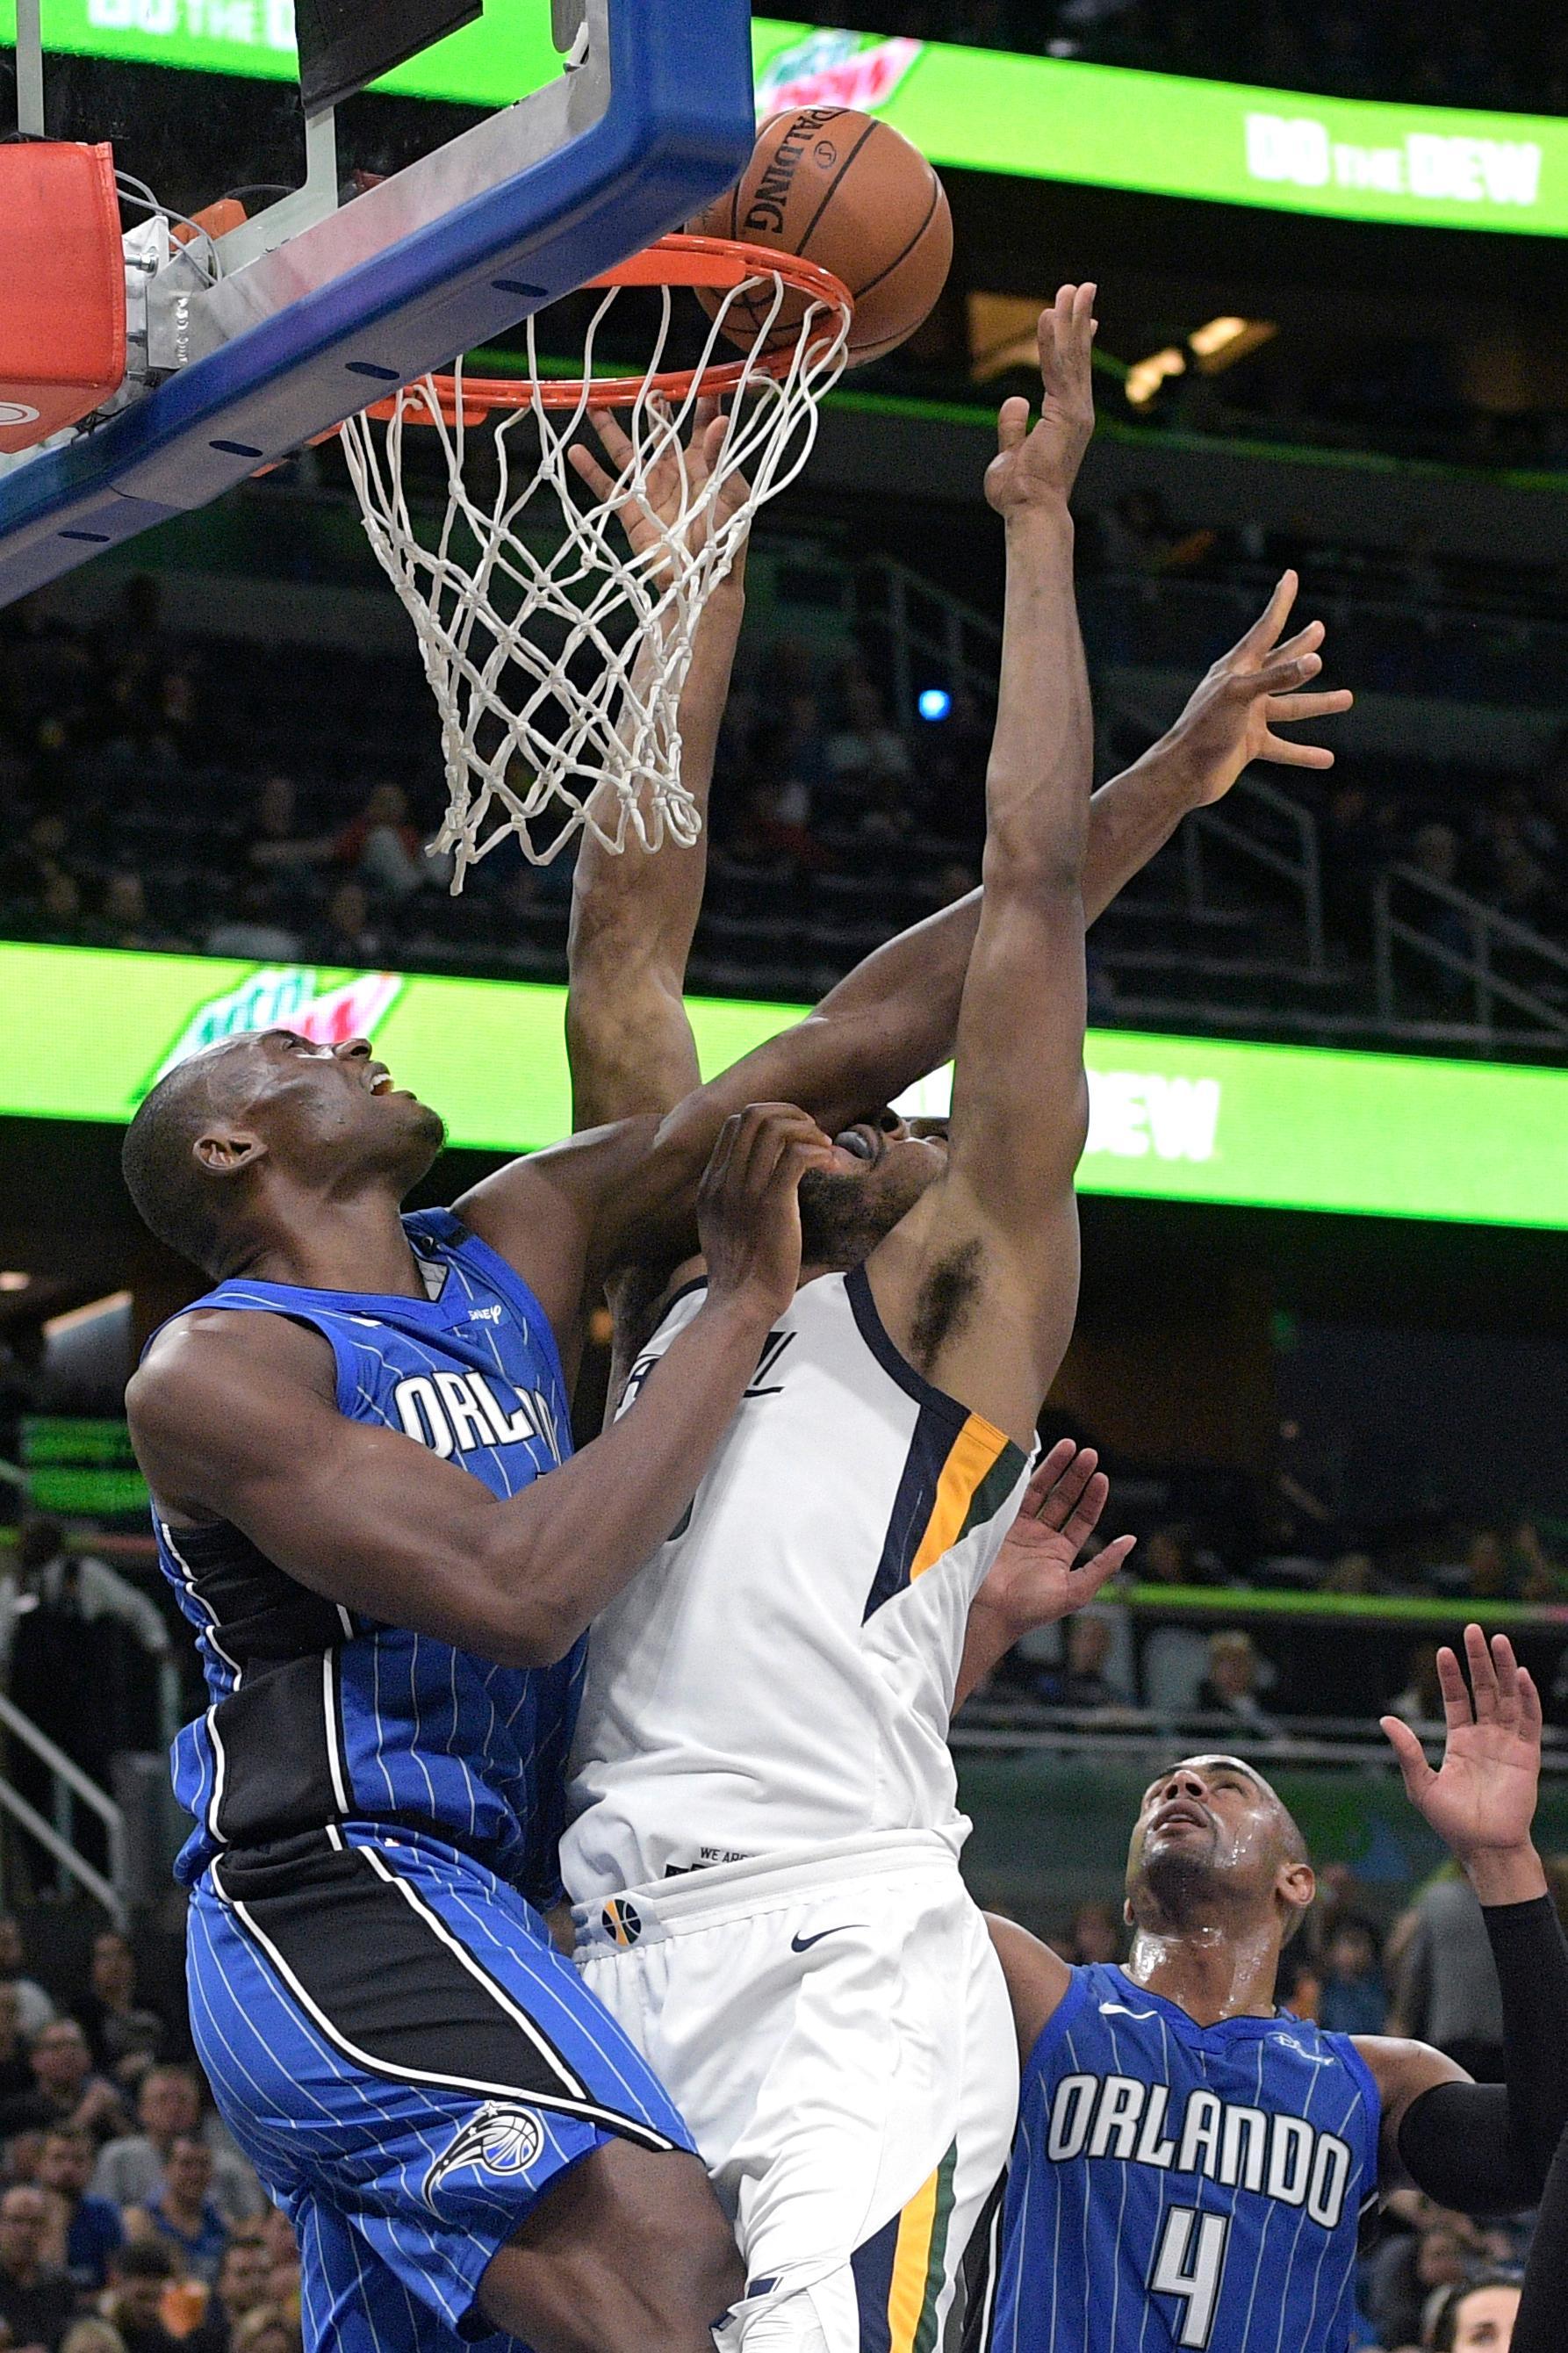 Utah Jazz forward Derrick Favors, center, is fouled by Orlando Magic center Bismack Biyombo (11), left, while going up for a shot as guard Arron Afflalo (4) watches during the second half of an NBA basketball game, Saturday, Nov. 18, 2017, in Orlando, Fla. The Jazz won 125-85. (AP Photo/Phelan M. Ebenhack)